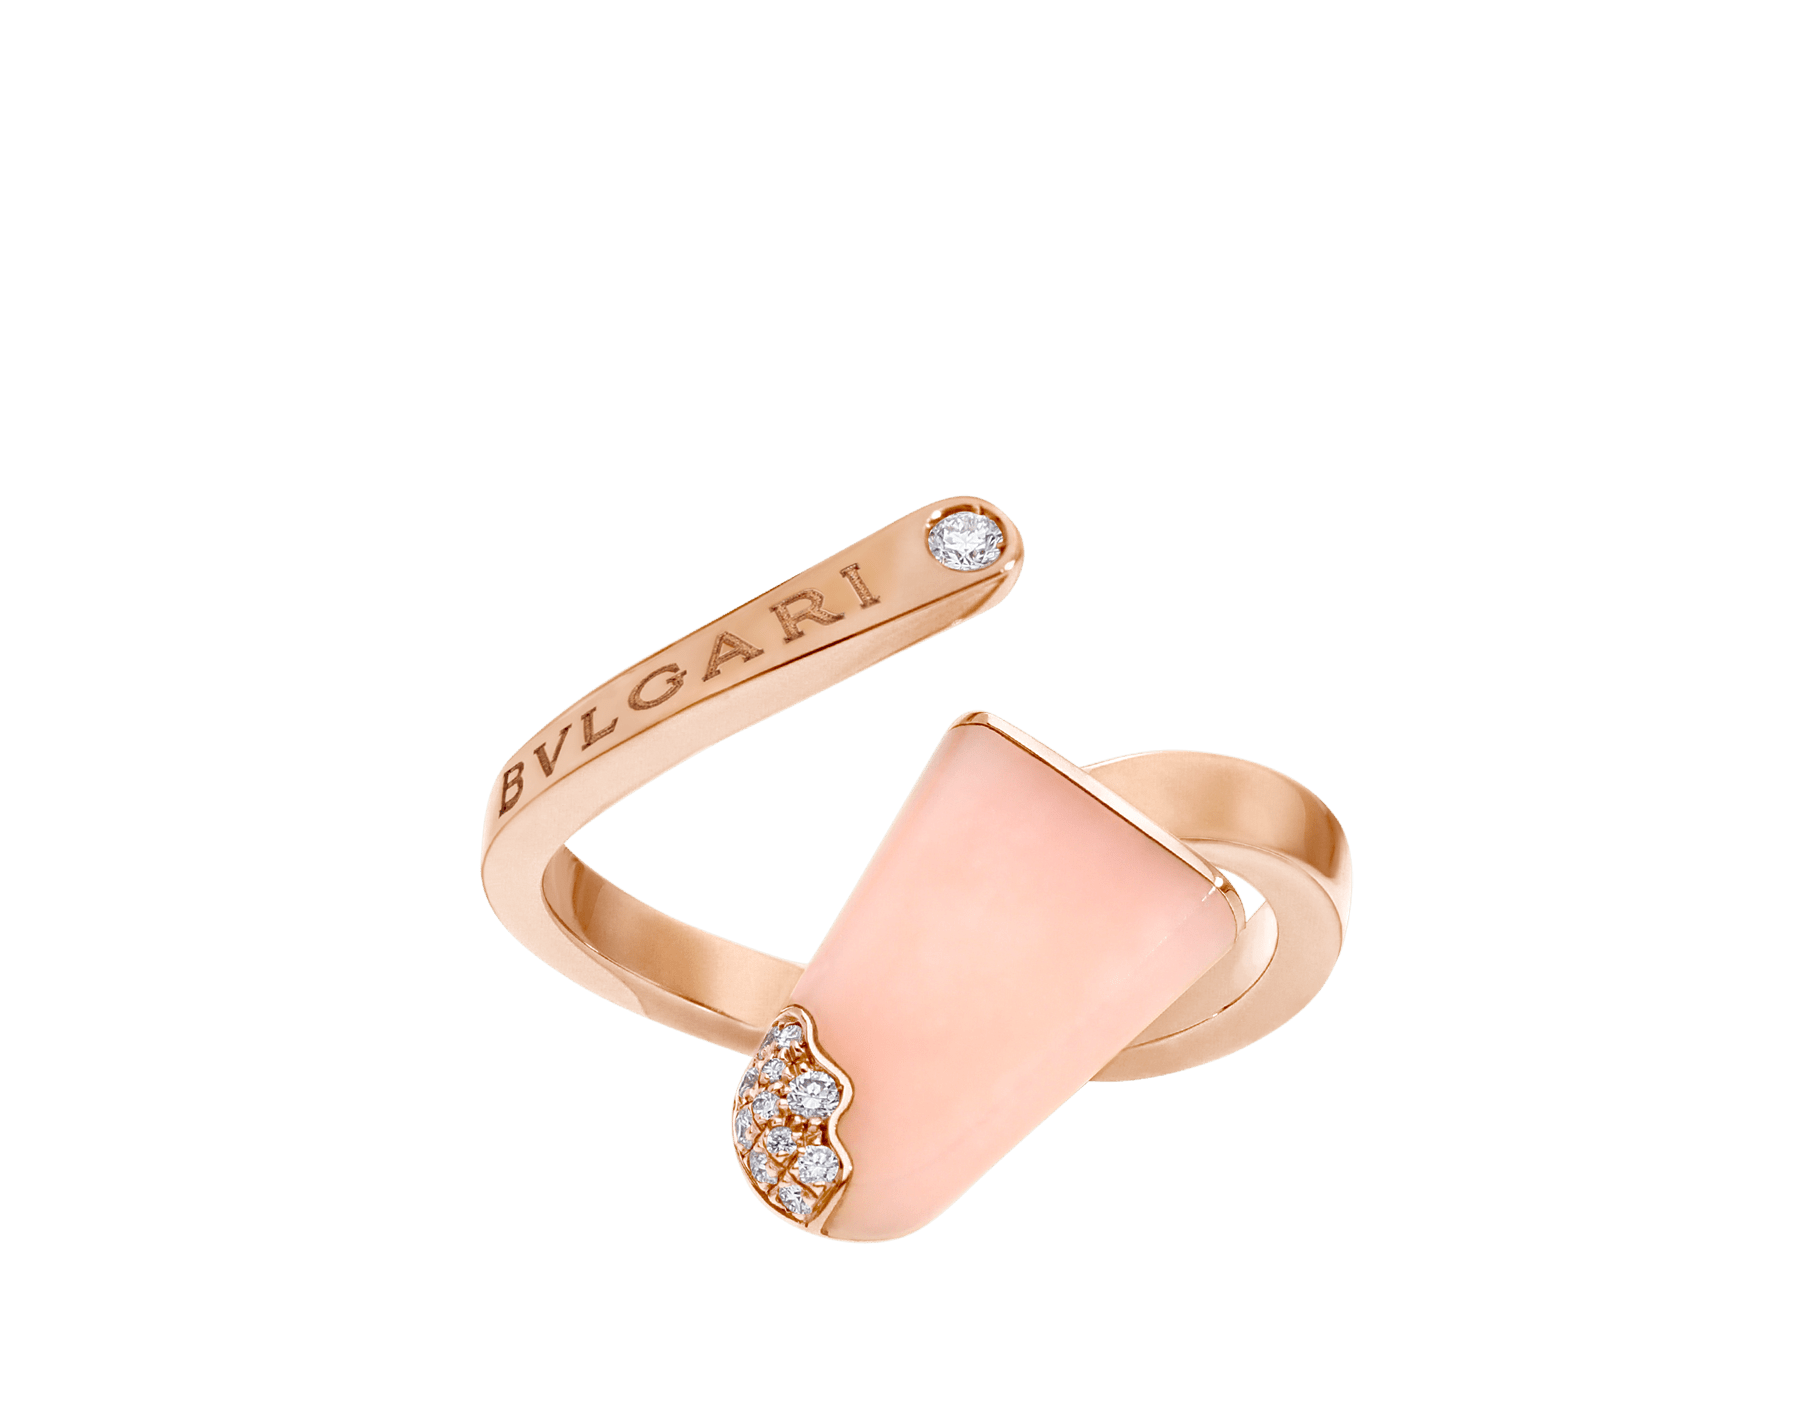 BVLGARI BVLGARI 18 kt rose gold ring set with pink opal and pavé diamonds AN858657 image 1